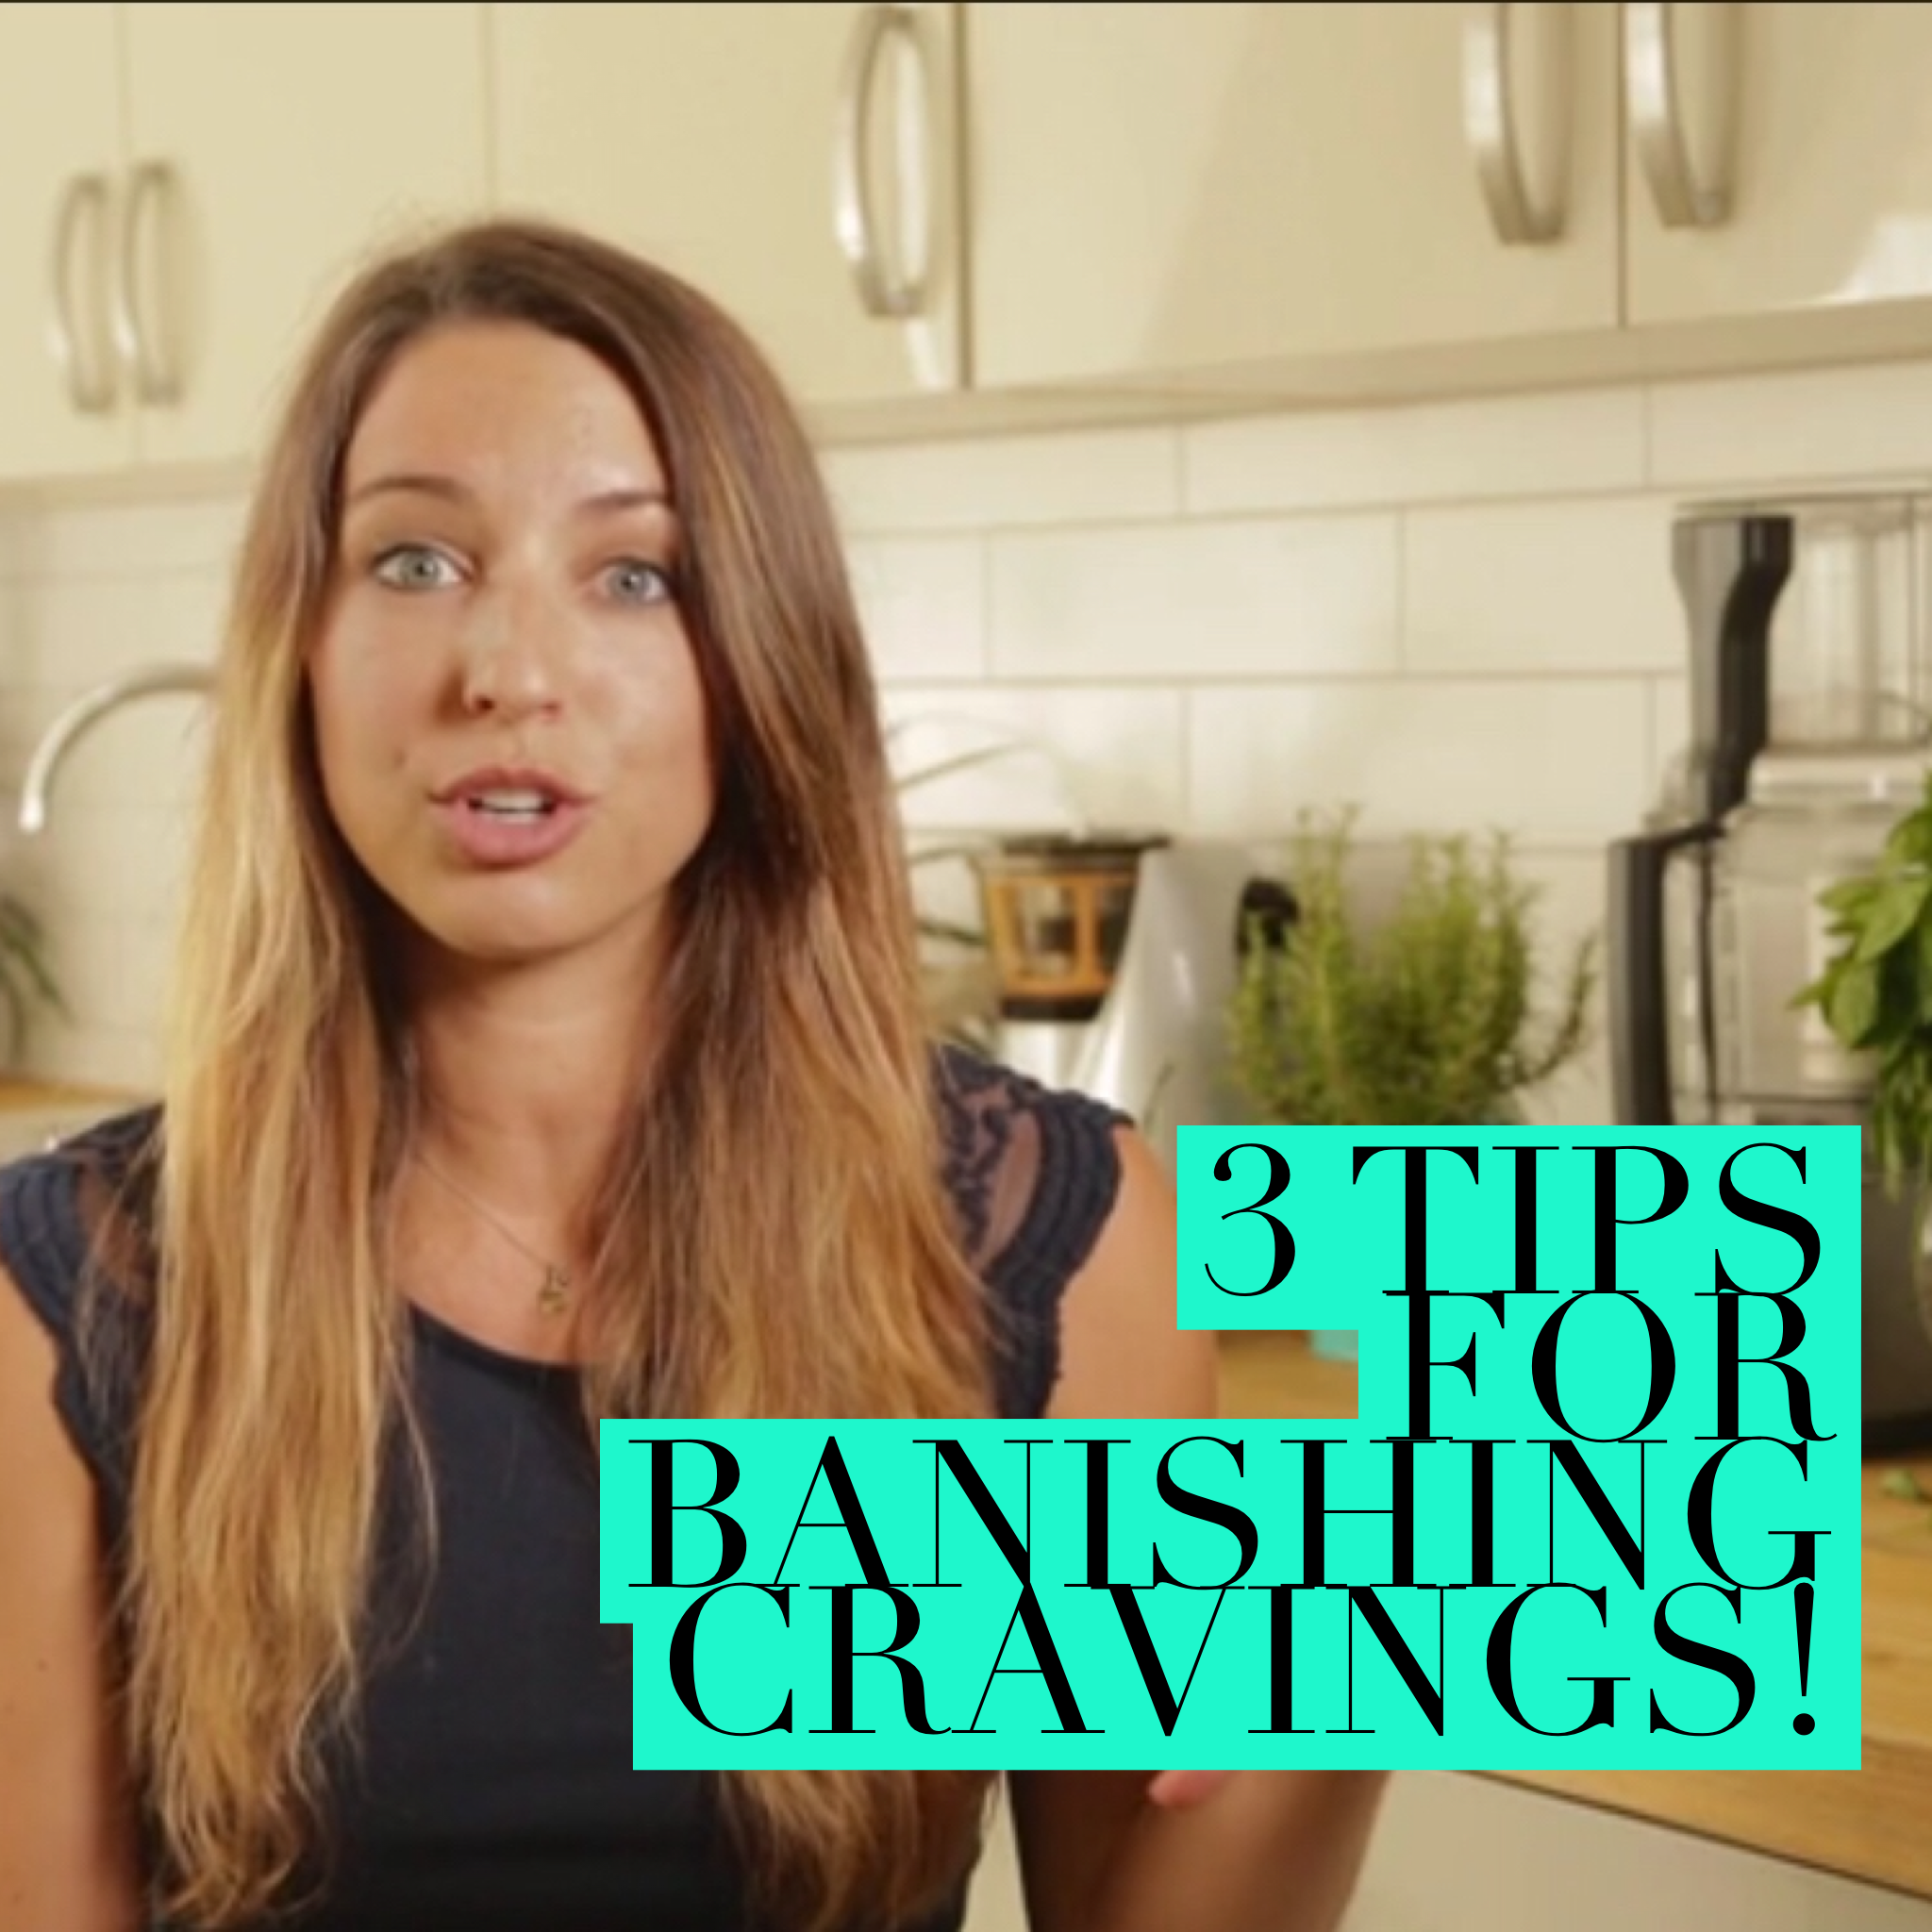 3 tips for banishing cravings